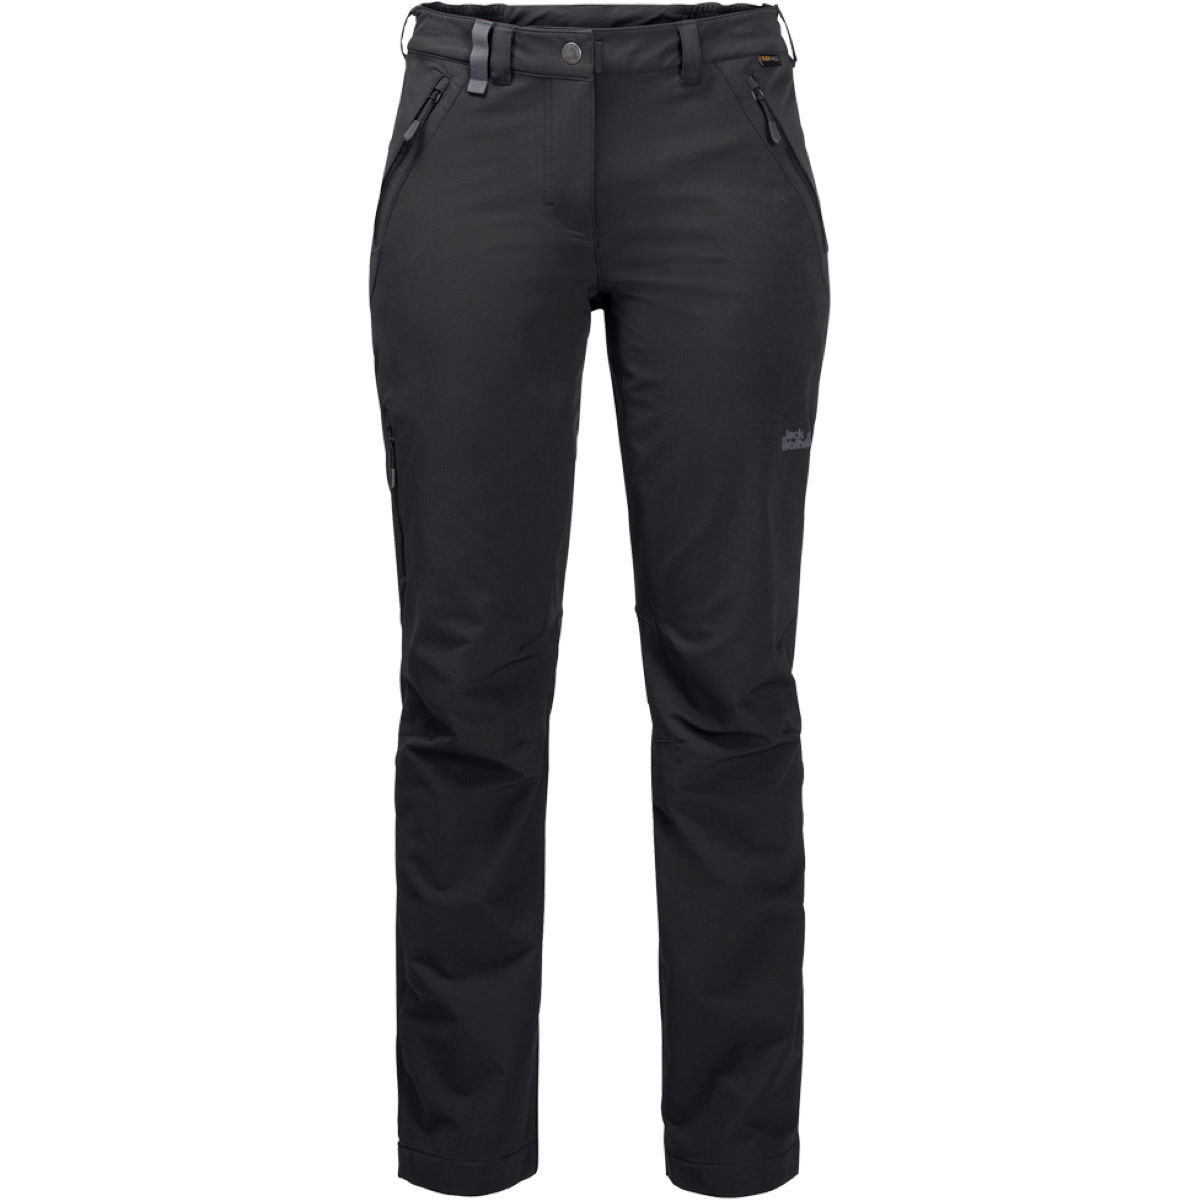 Pantalon Jack Wolfskin Activate XT - Small Black